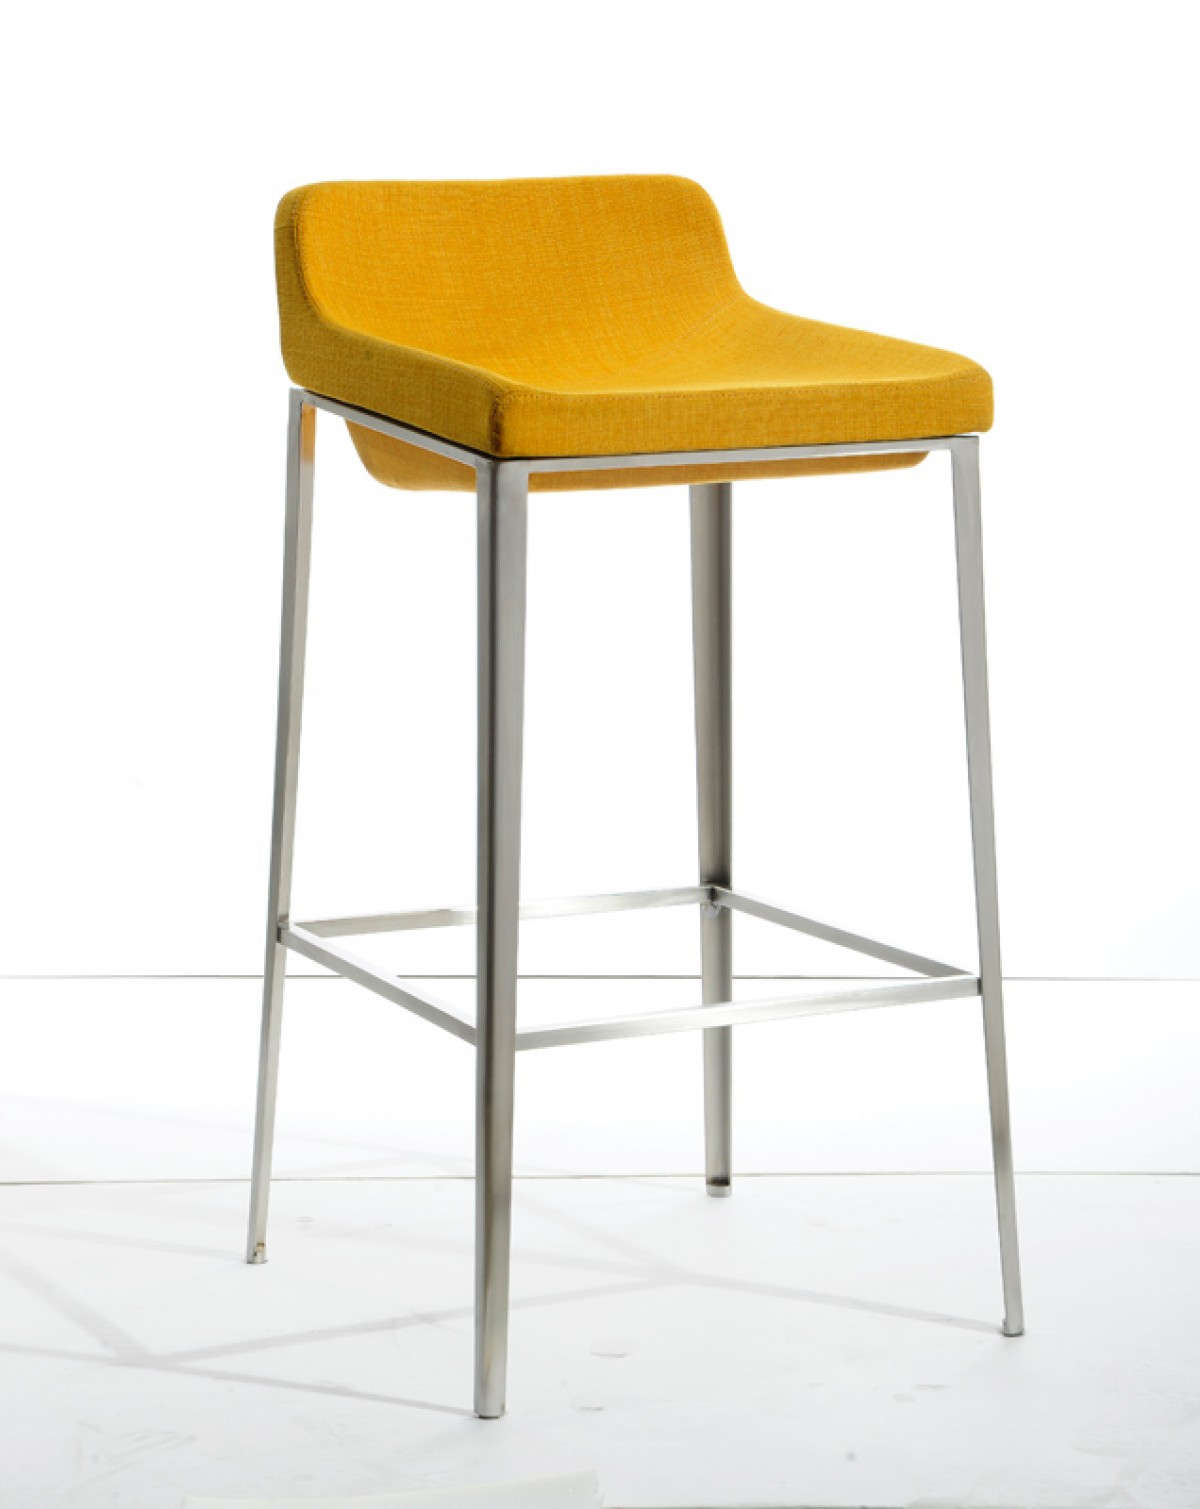 Adhil yellow fabric bar stool las vegas furniture store modern